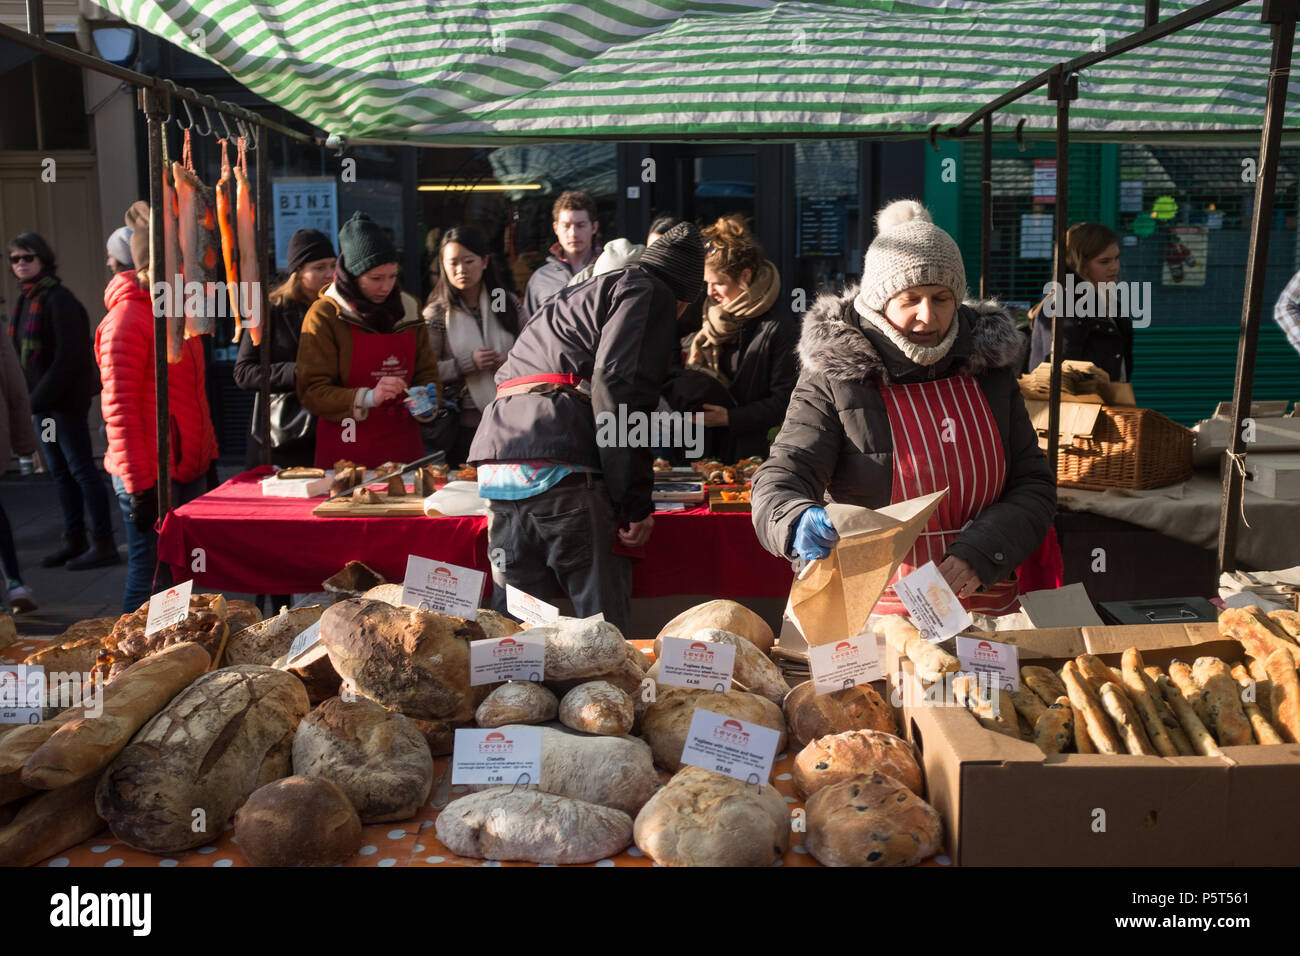 Handmade, Artisan Bread For Sale at the Weekly Broadway Street Market, Hackney, London, England, Europe. Stock Photo